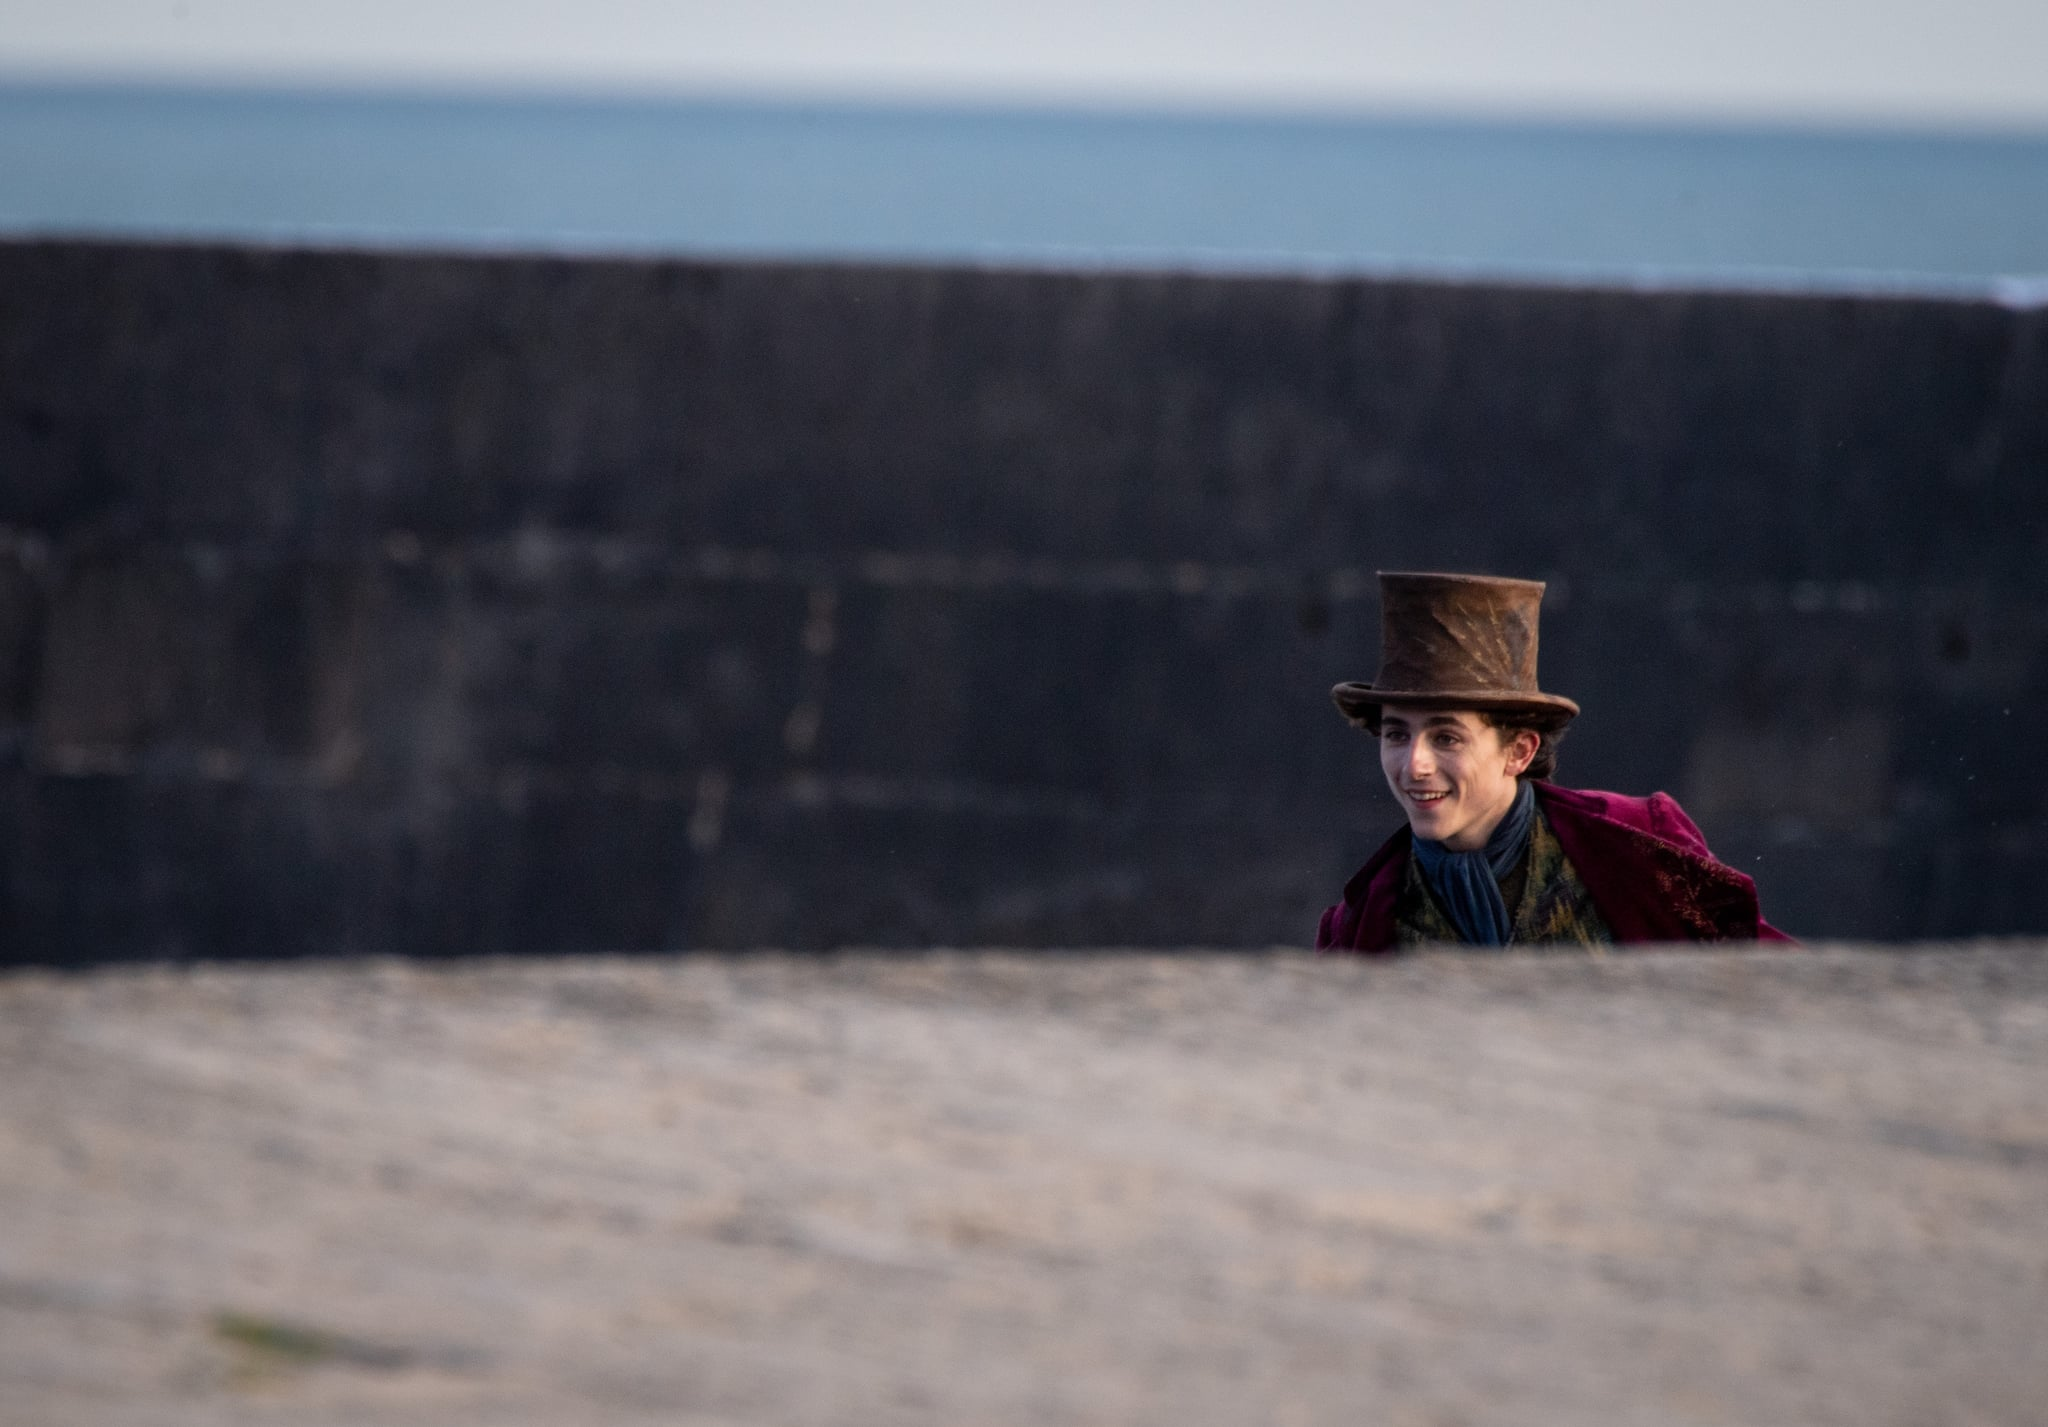 LYME REGIS, ENGLAND - OCTOBER 12: Timothée Chalamet was spotted leaving the ship at the top of a van at the filming of Warner Bros. and the upcoming Roald Dahl Story Company film 'Wonka' on Oct. 12, 2021, in Lyme Regis, England.  This film will focus on young Willy Wonka on his very first adventure and how he met the Oompa-Loompas.  (Photo by Finnbarr Webster / Getty Images)